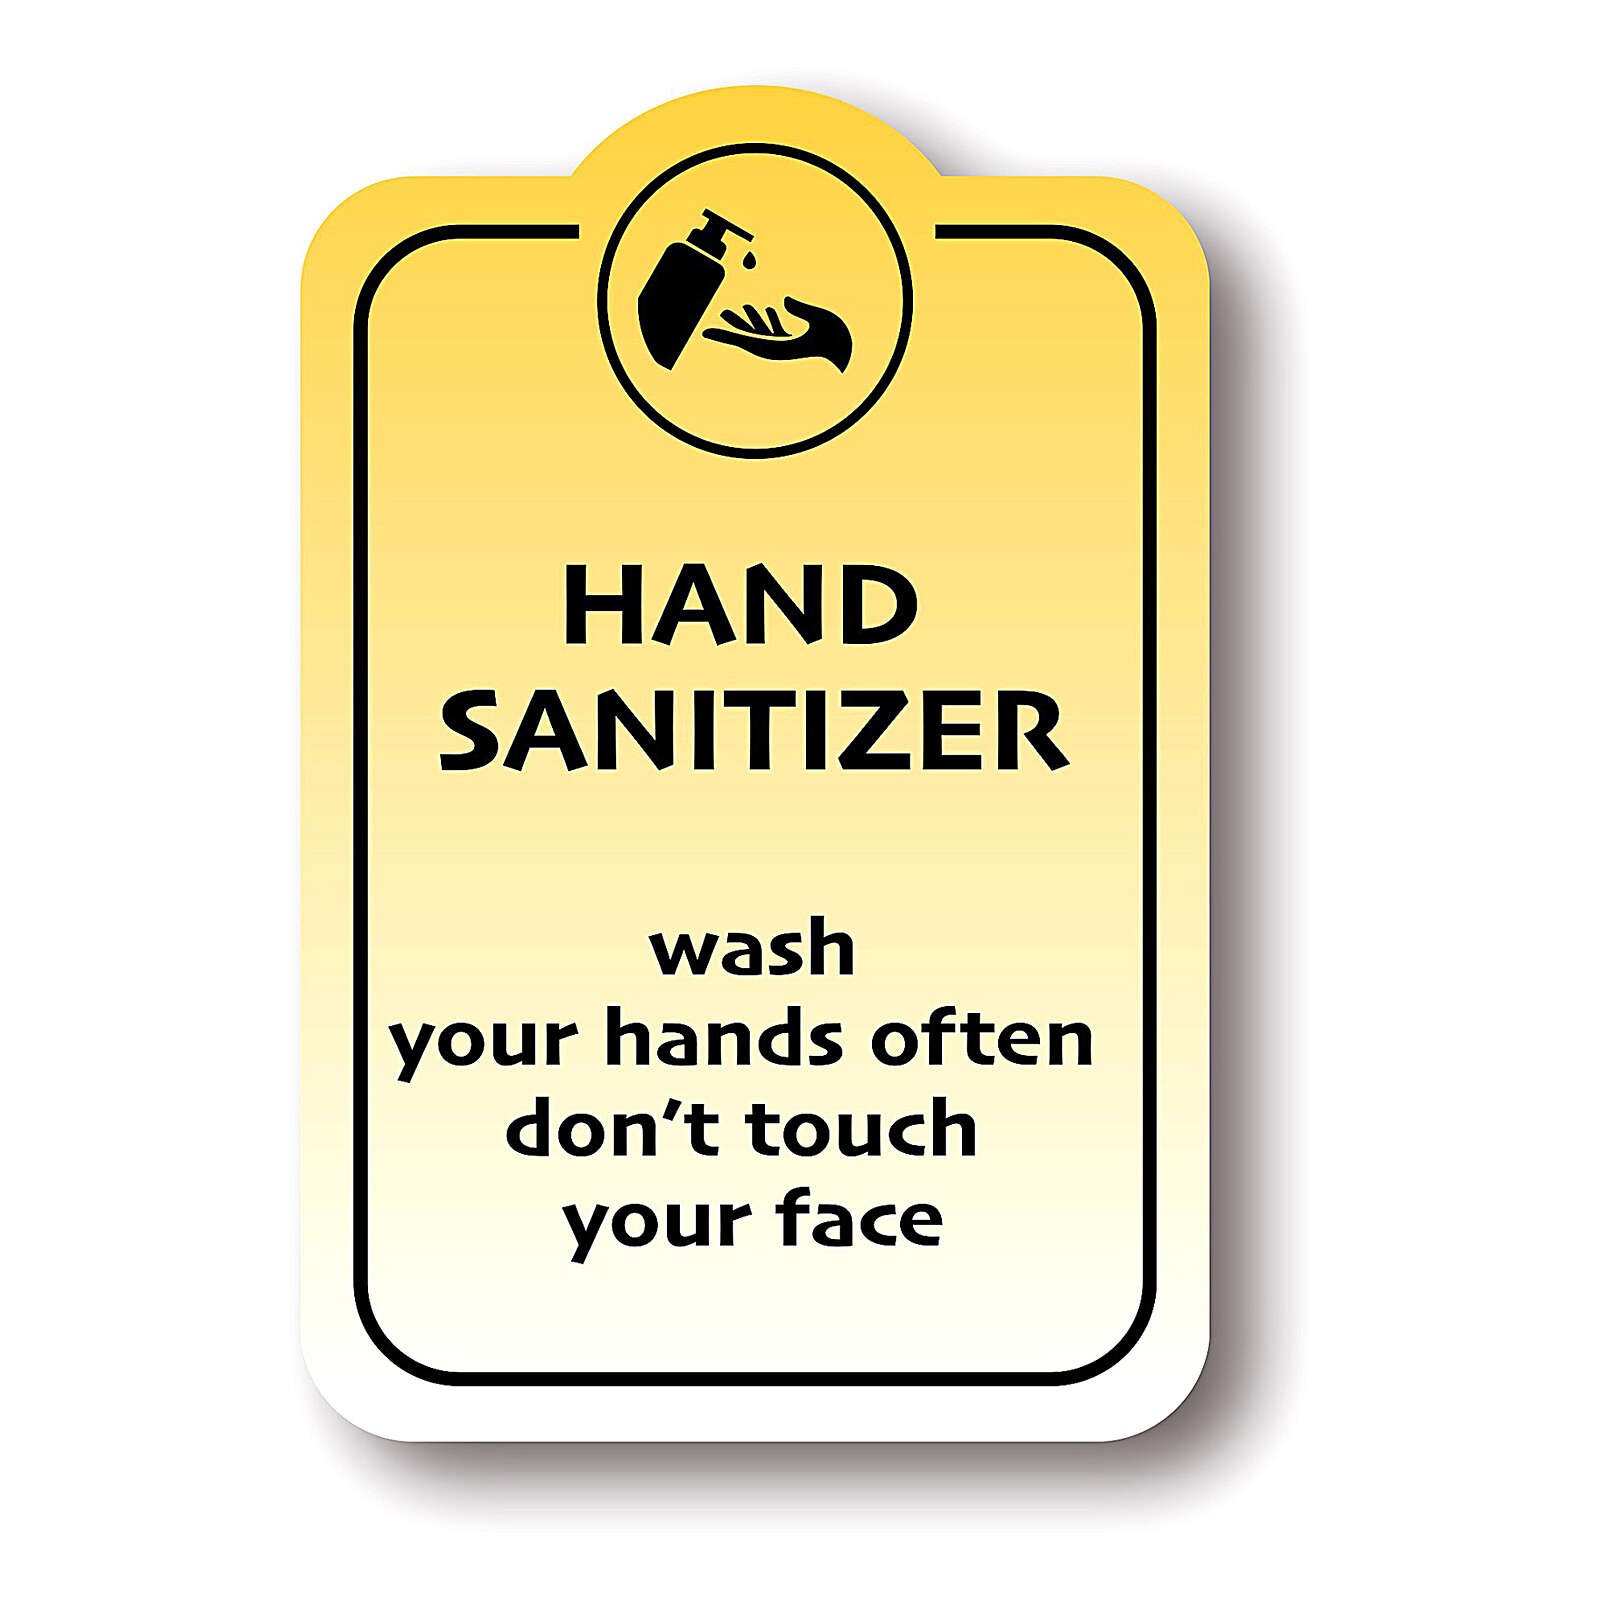 HAND SANITISER WASH YOUR HANDS removable stickers 4 pcs 3